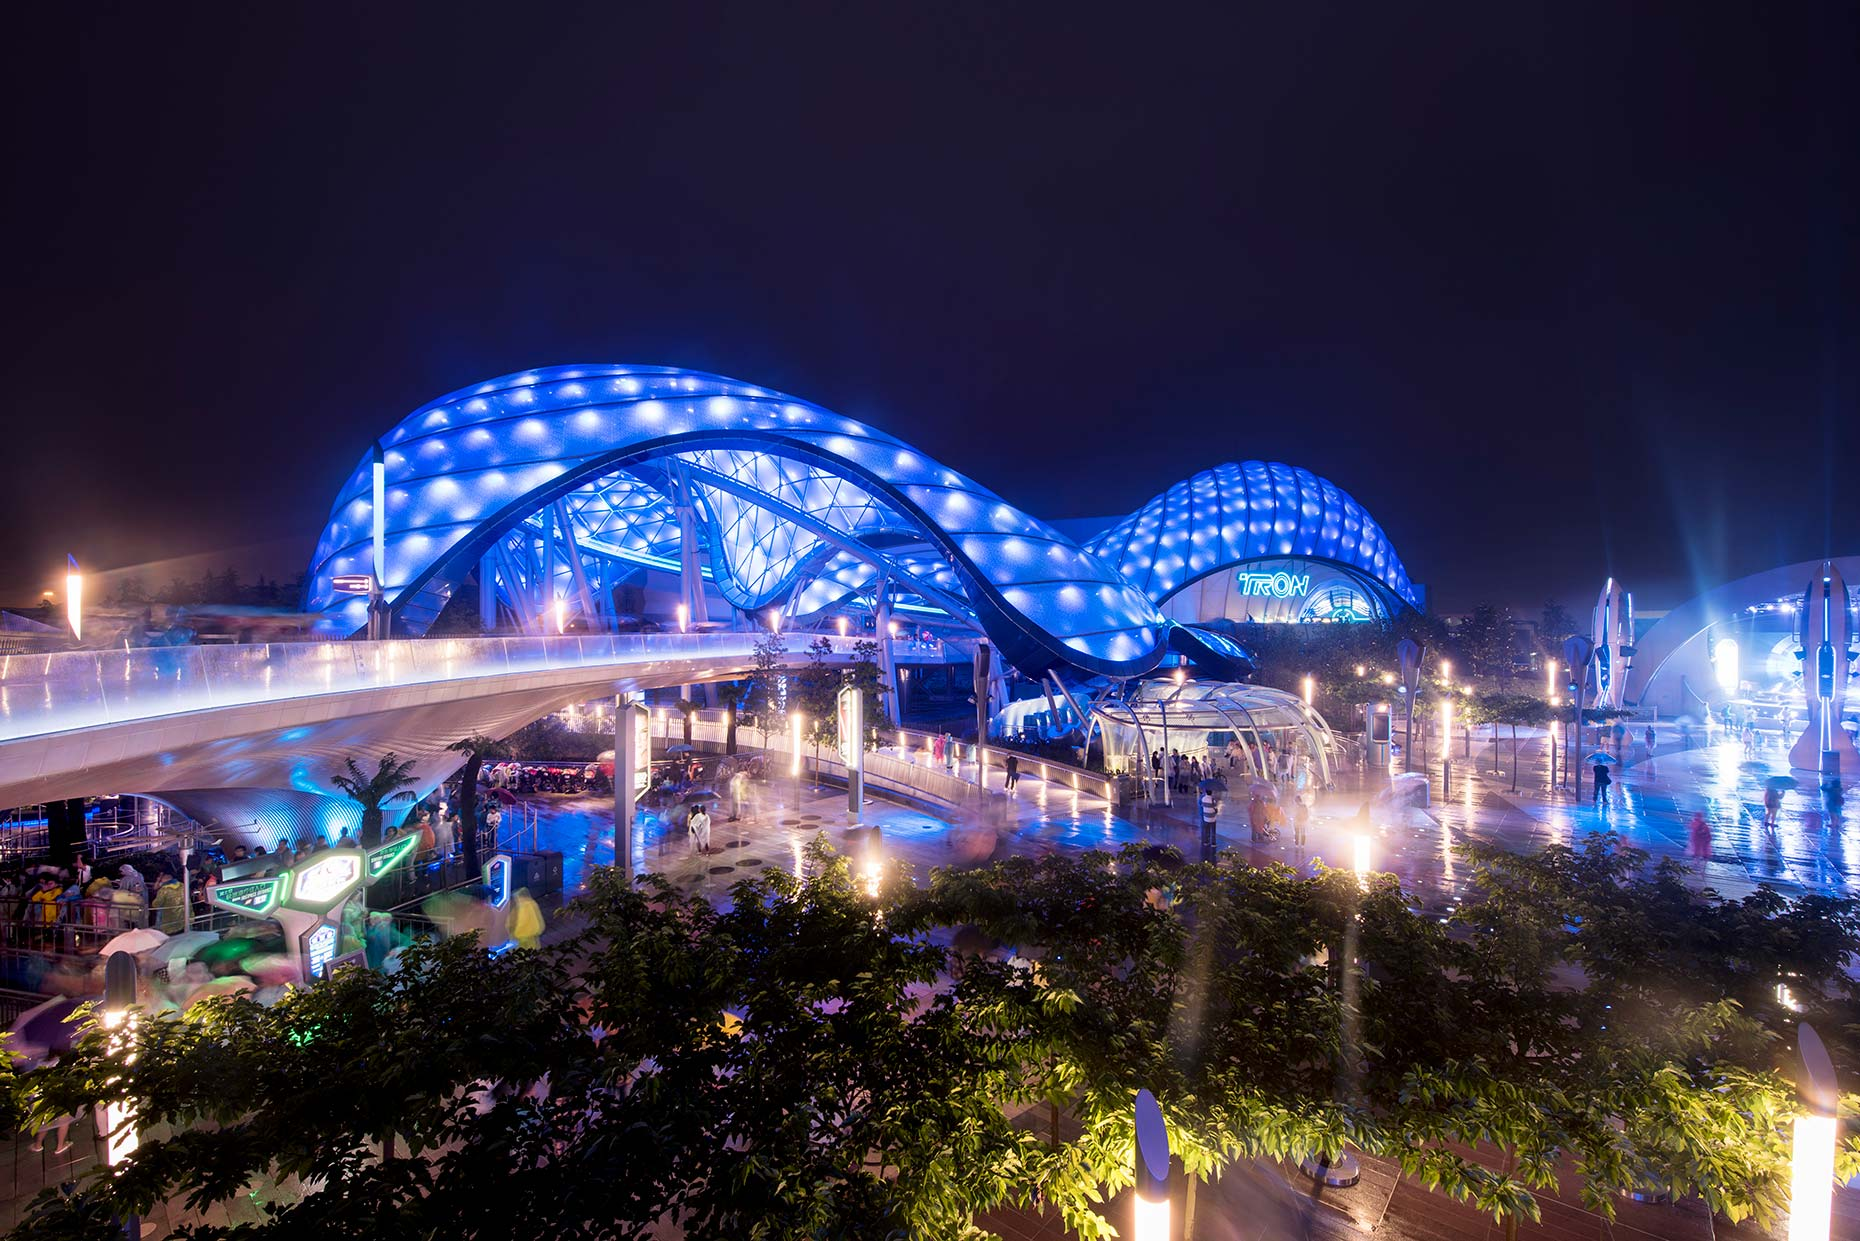 Shanghai Disney Grimshaw Architects